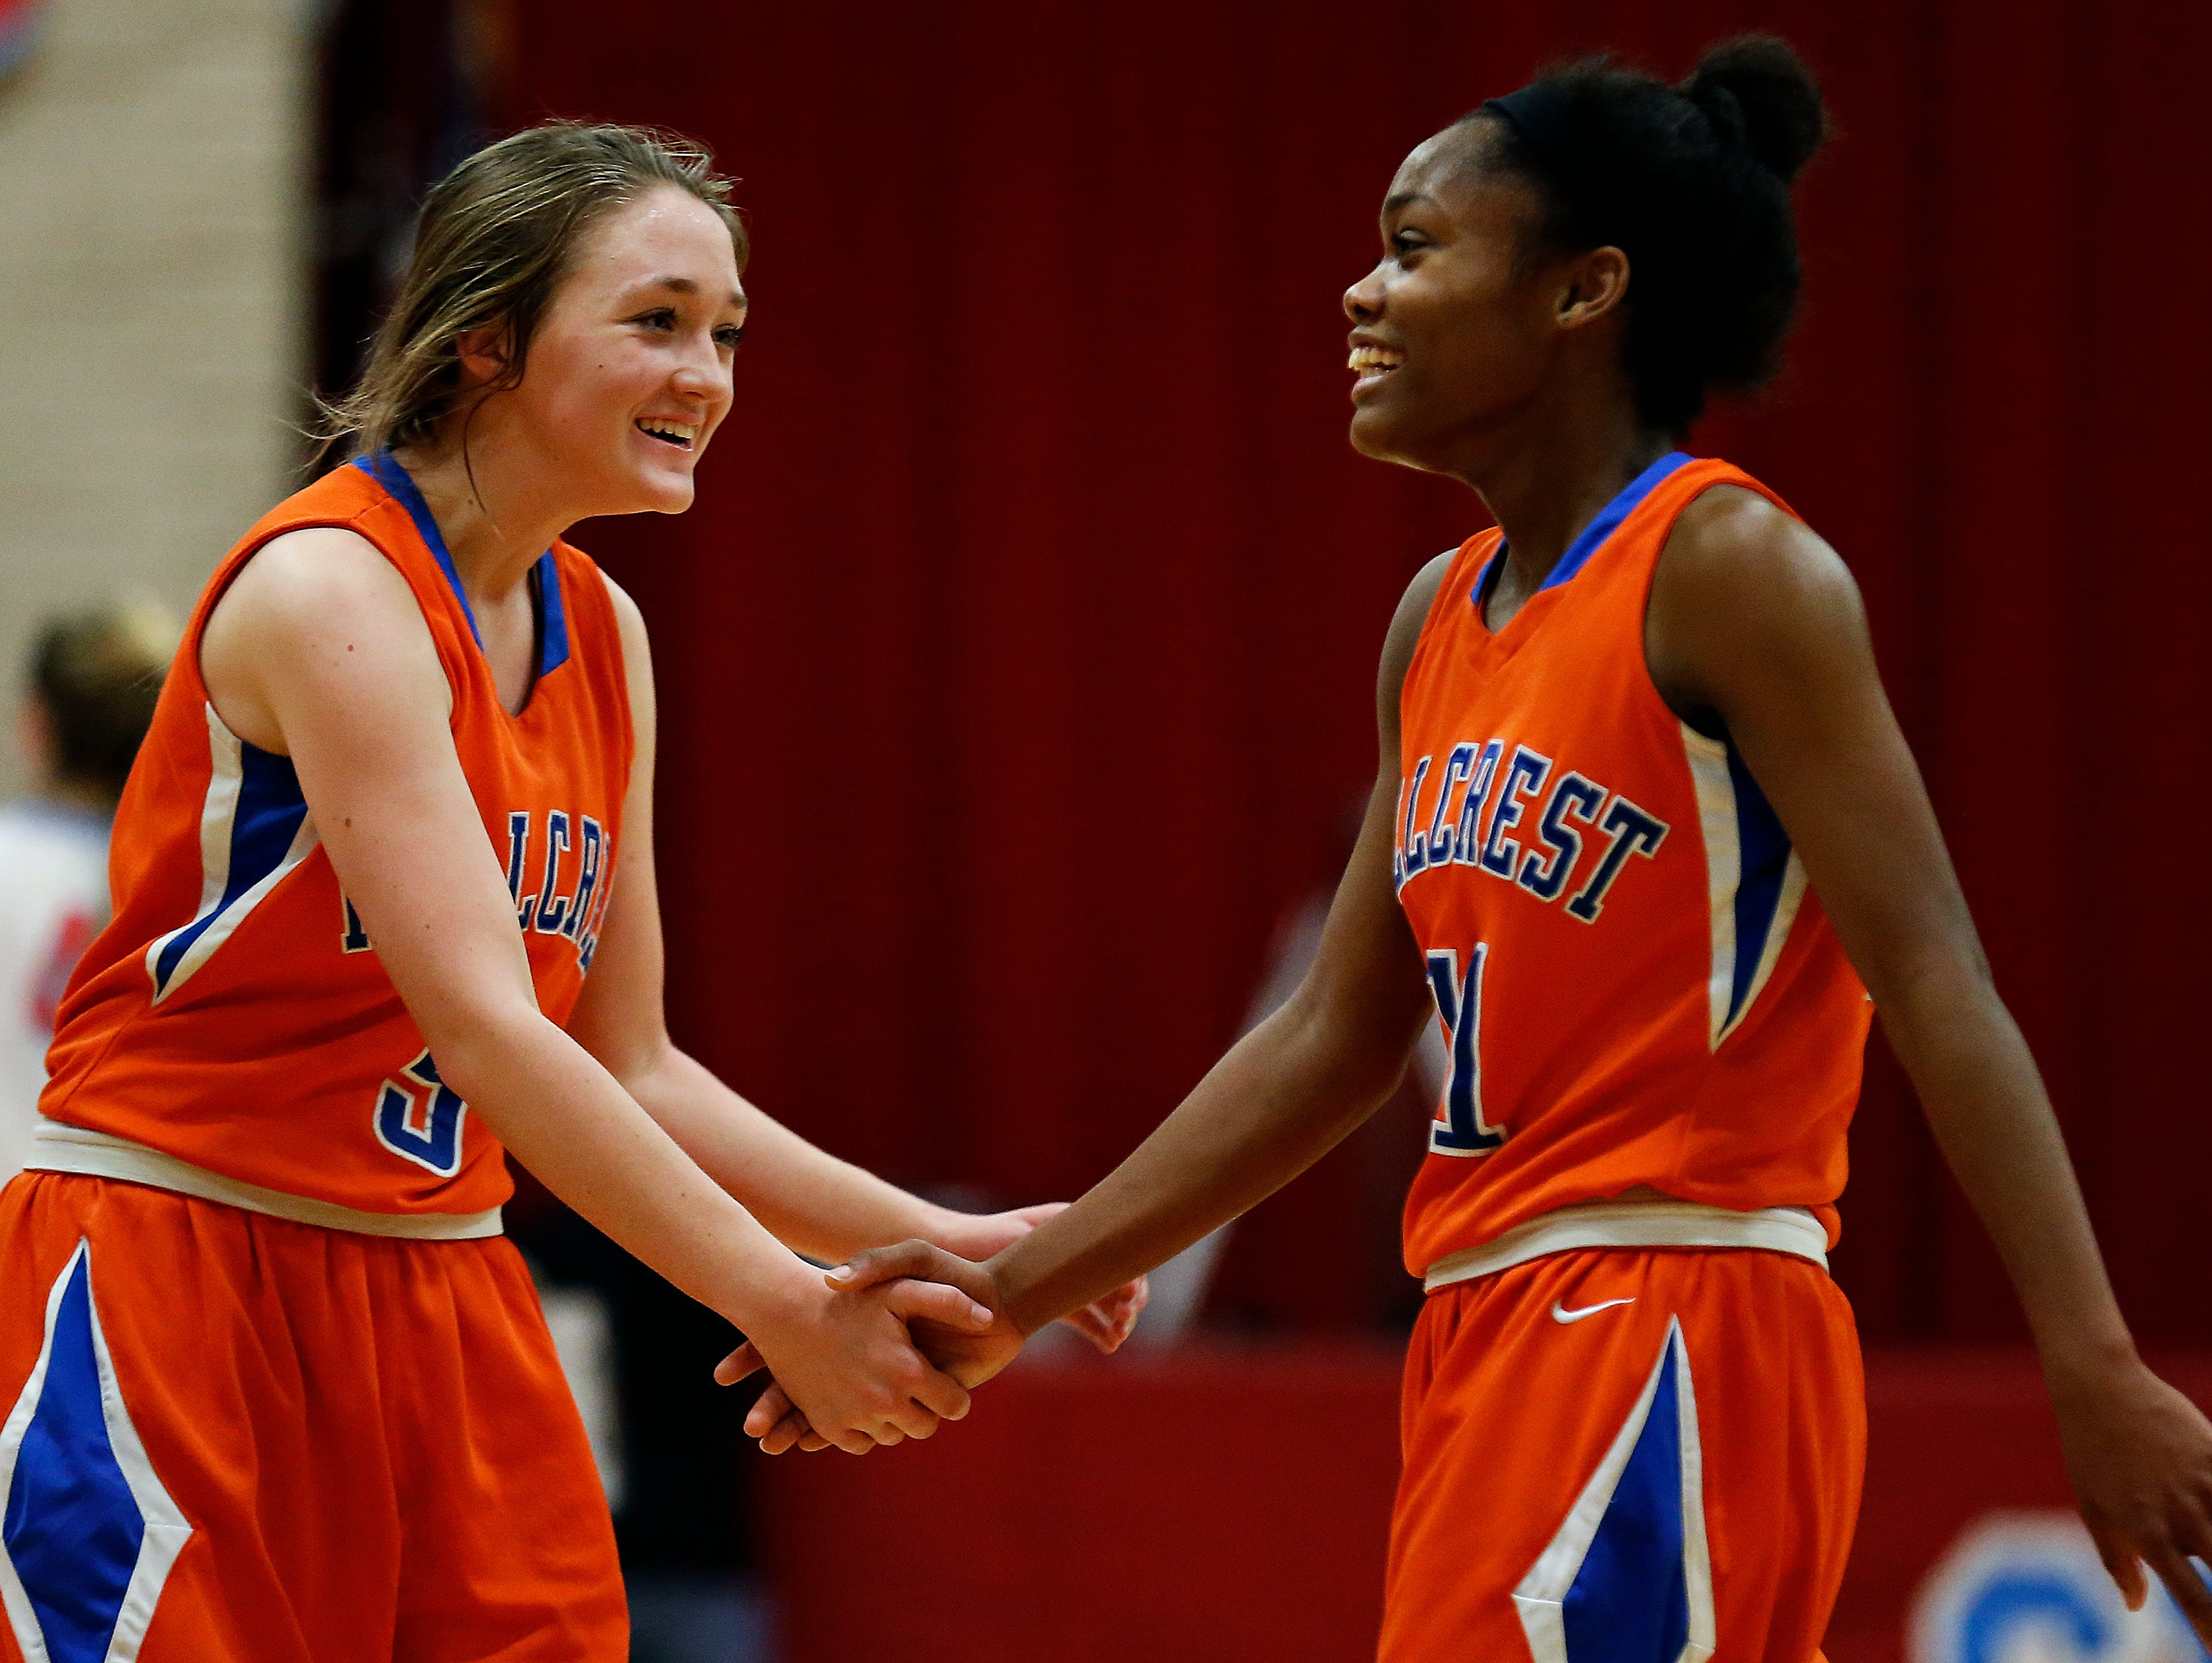 Hillcrest High Schoolsophomore Sarah Hale (5) and senior Kaycee Gerald (11) celebrate after the end of the Hornets' game against Glendale High School at Glendale High School in Springfield, Mo. on Jan. 7, 2015. The Hornets won the game 49-39.